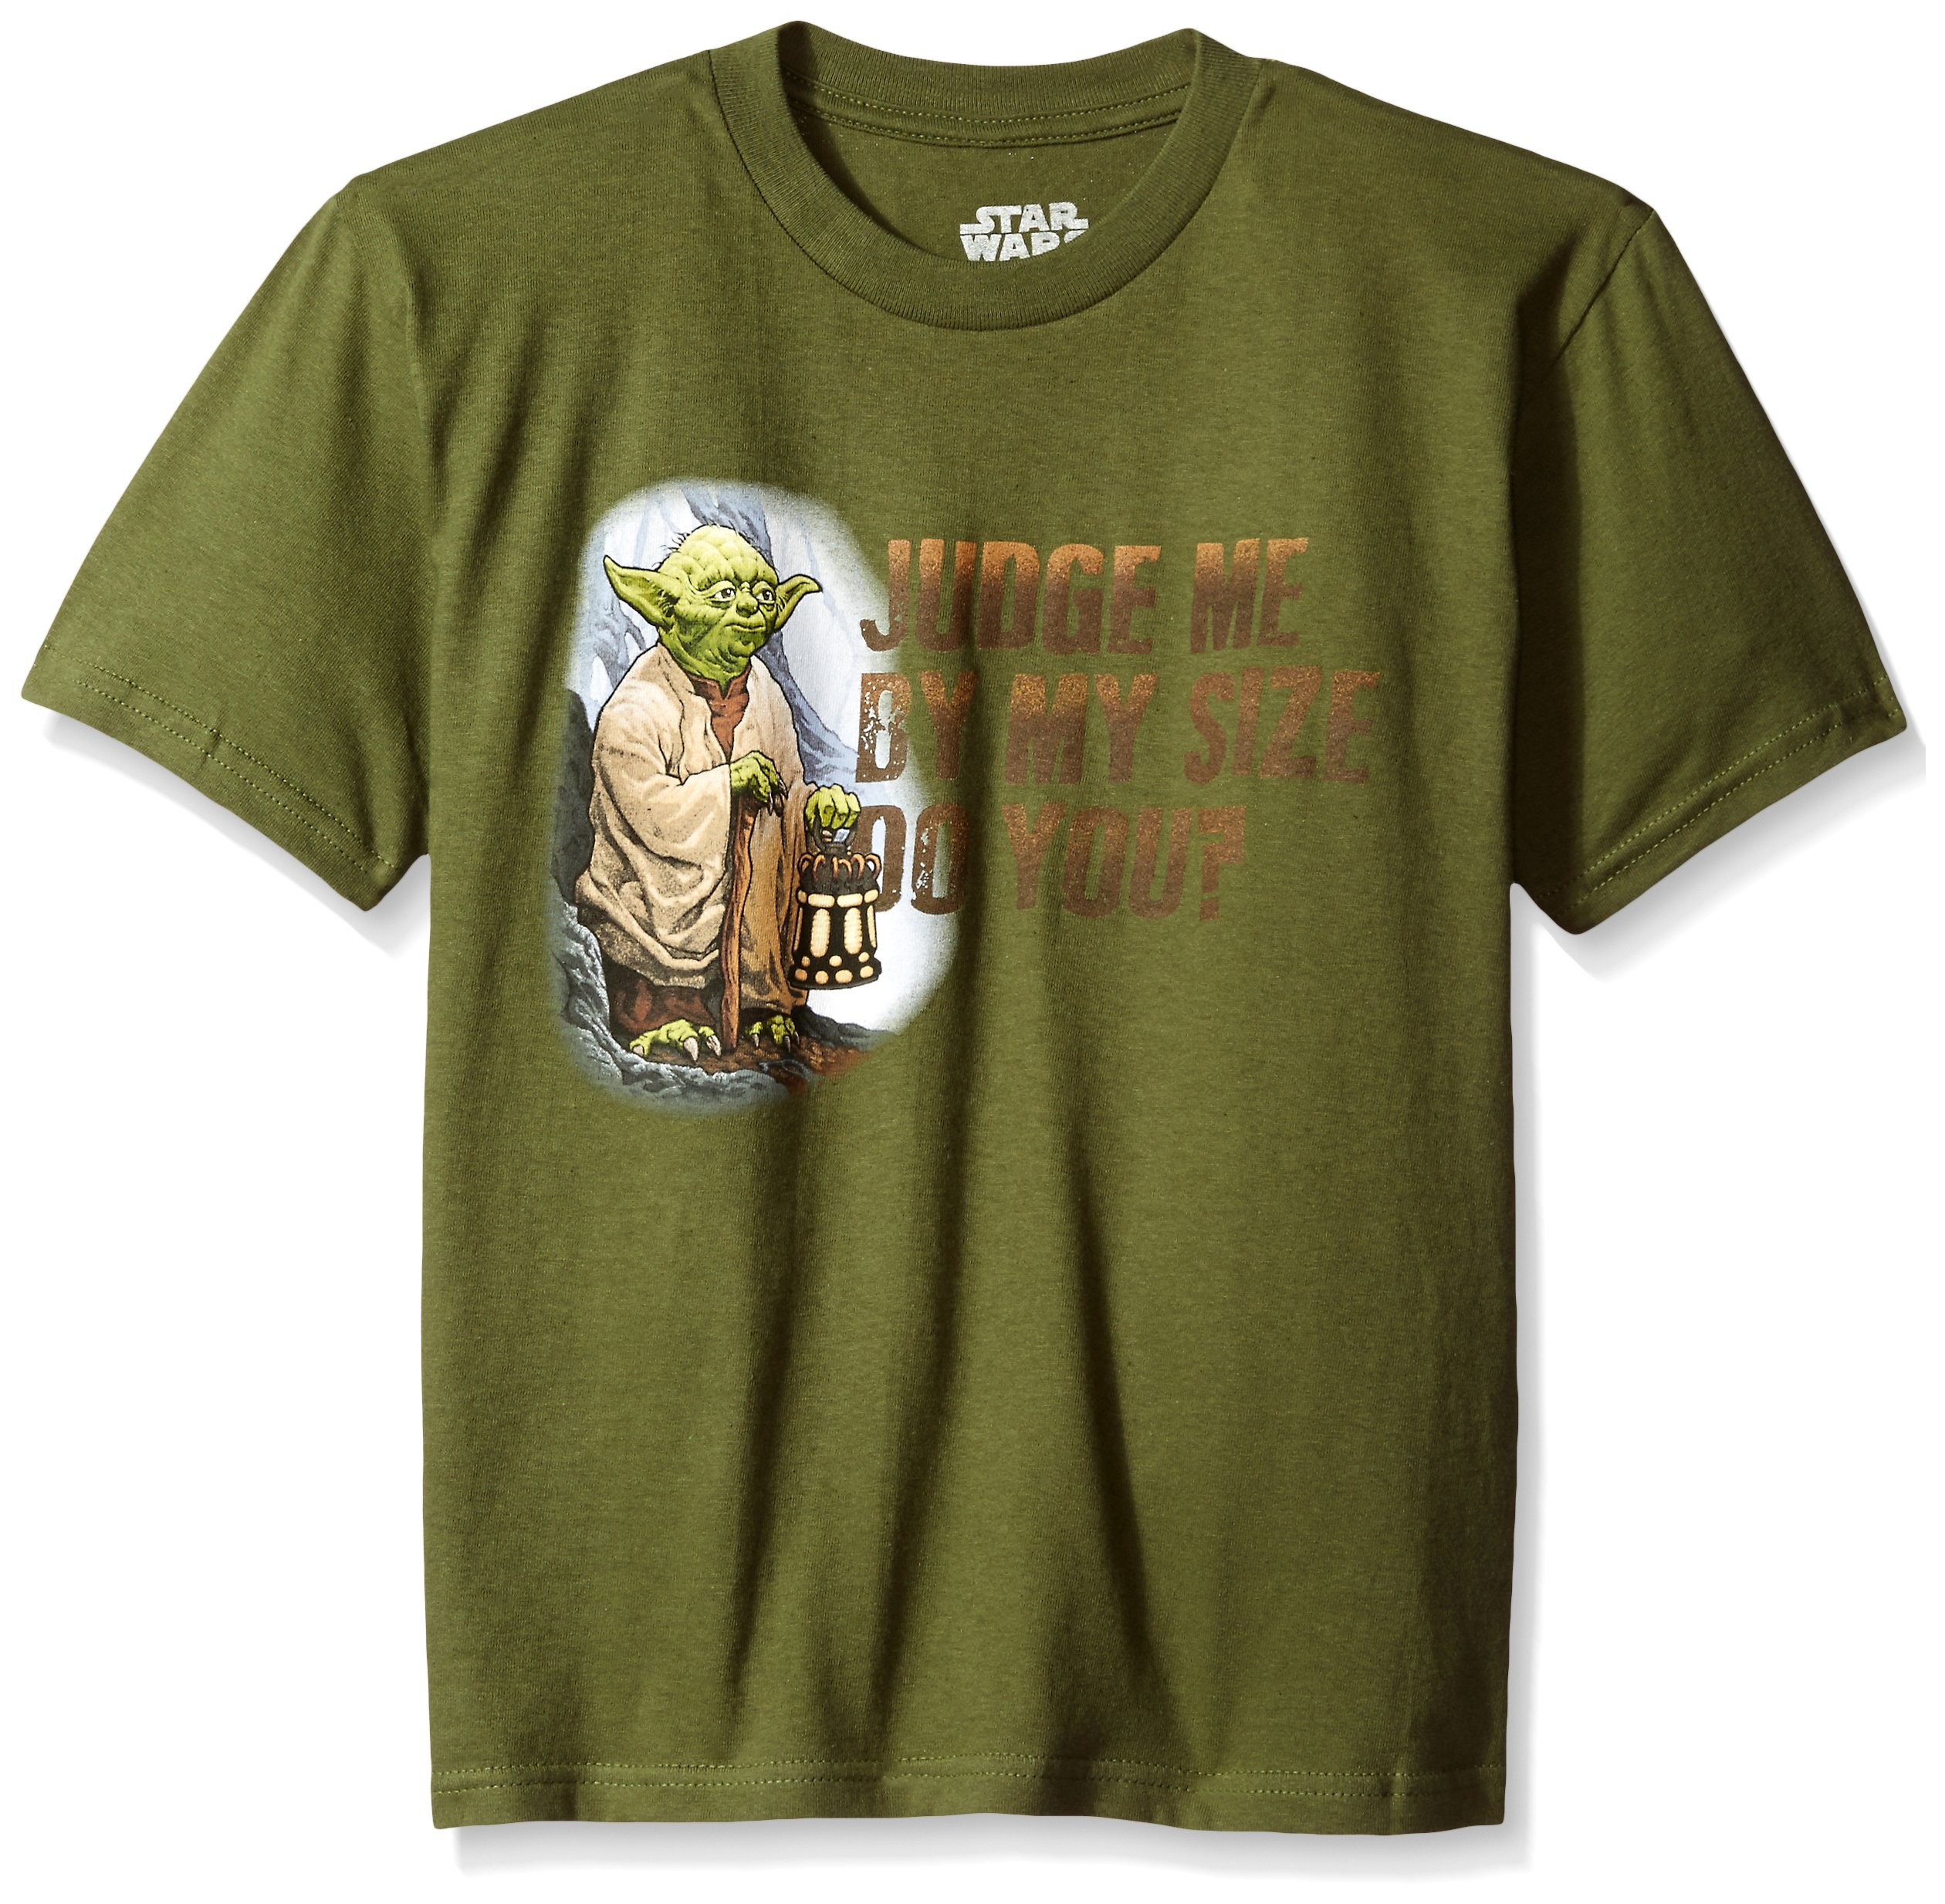 Star Wars Boys' T-Shirt, Olive, Large